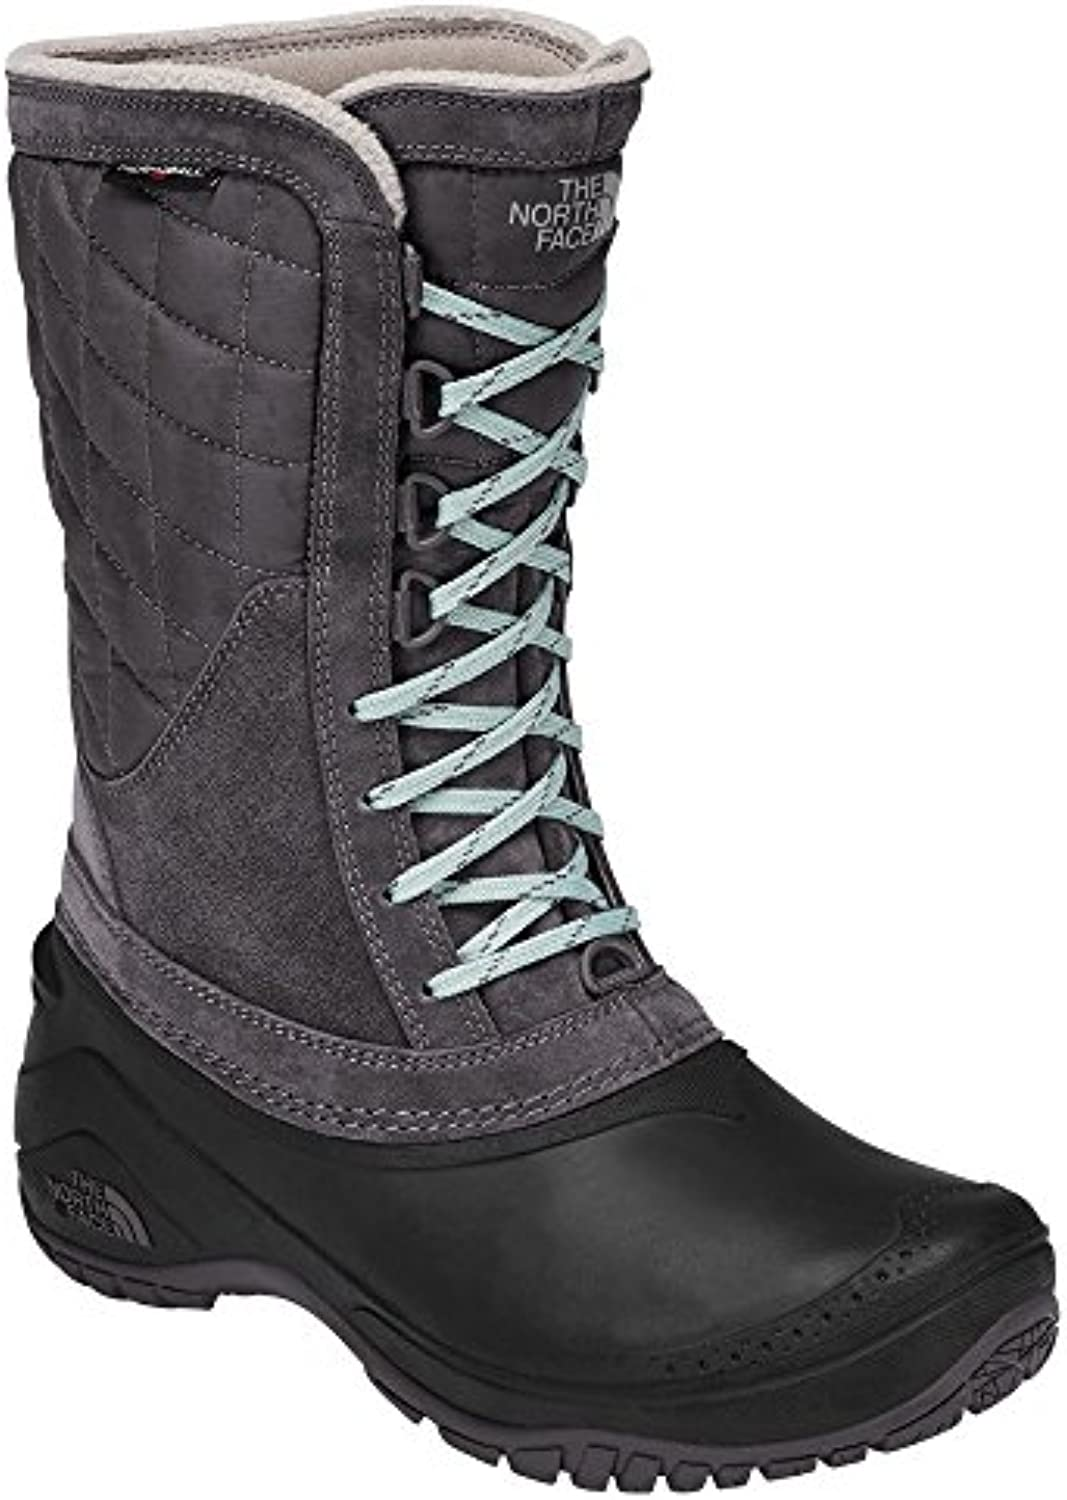 THE Utility NORTH FACE W Thermoball Utility THE Bottes de Protection pour FemmeB079RNND79Parent d7f649